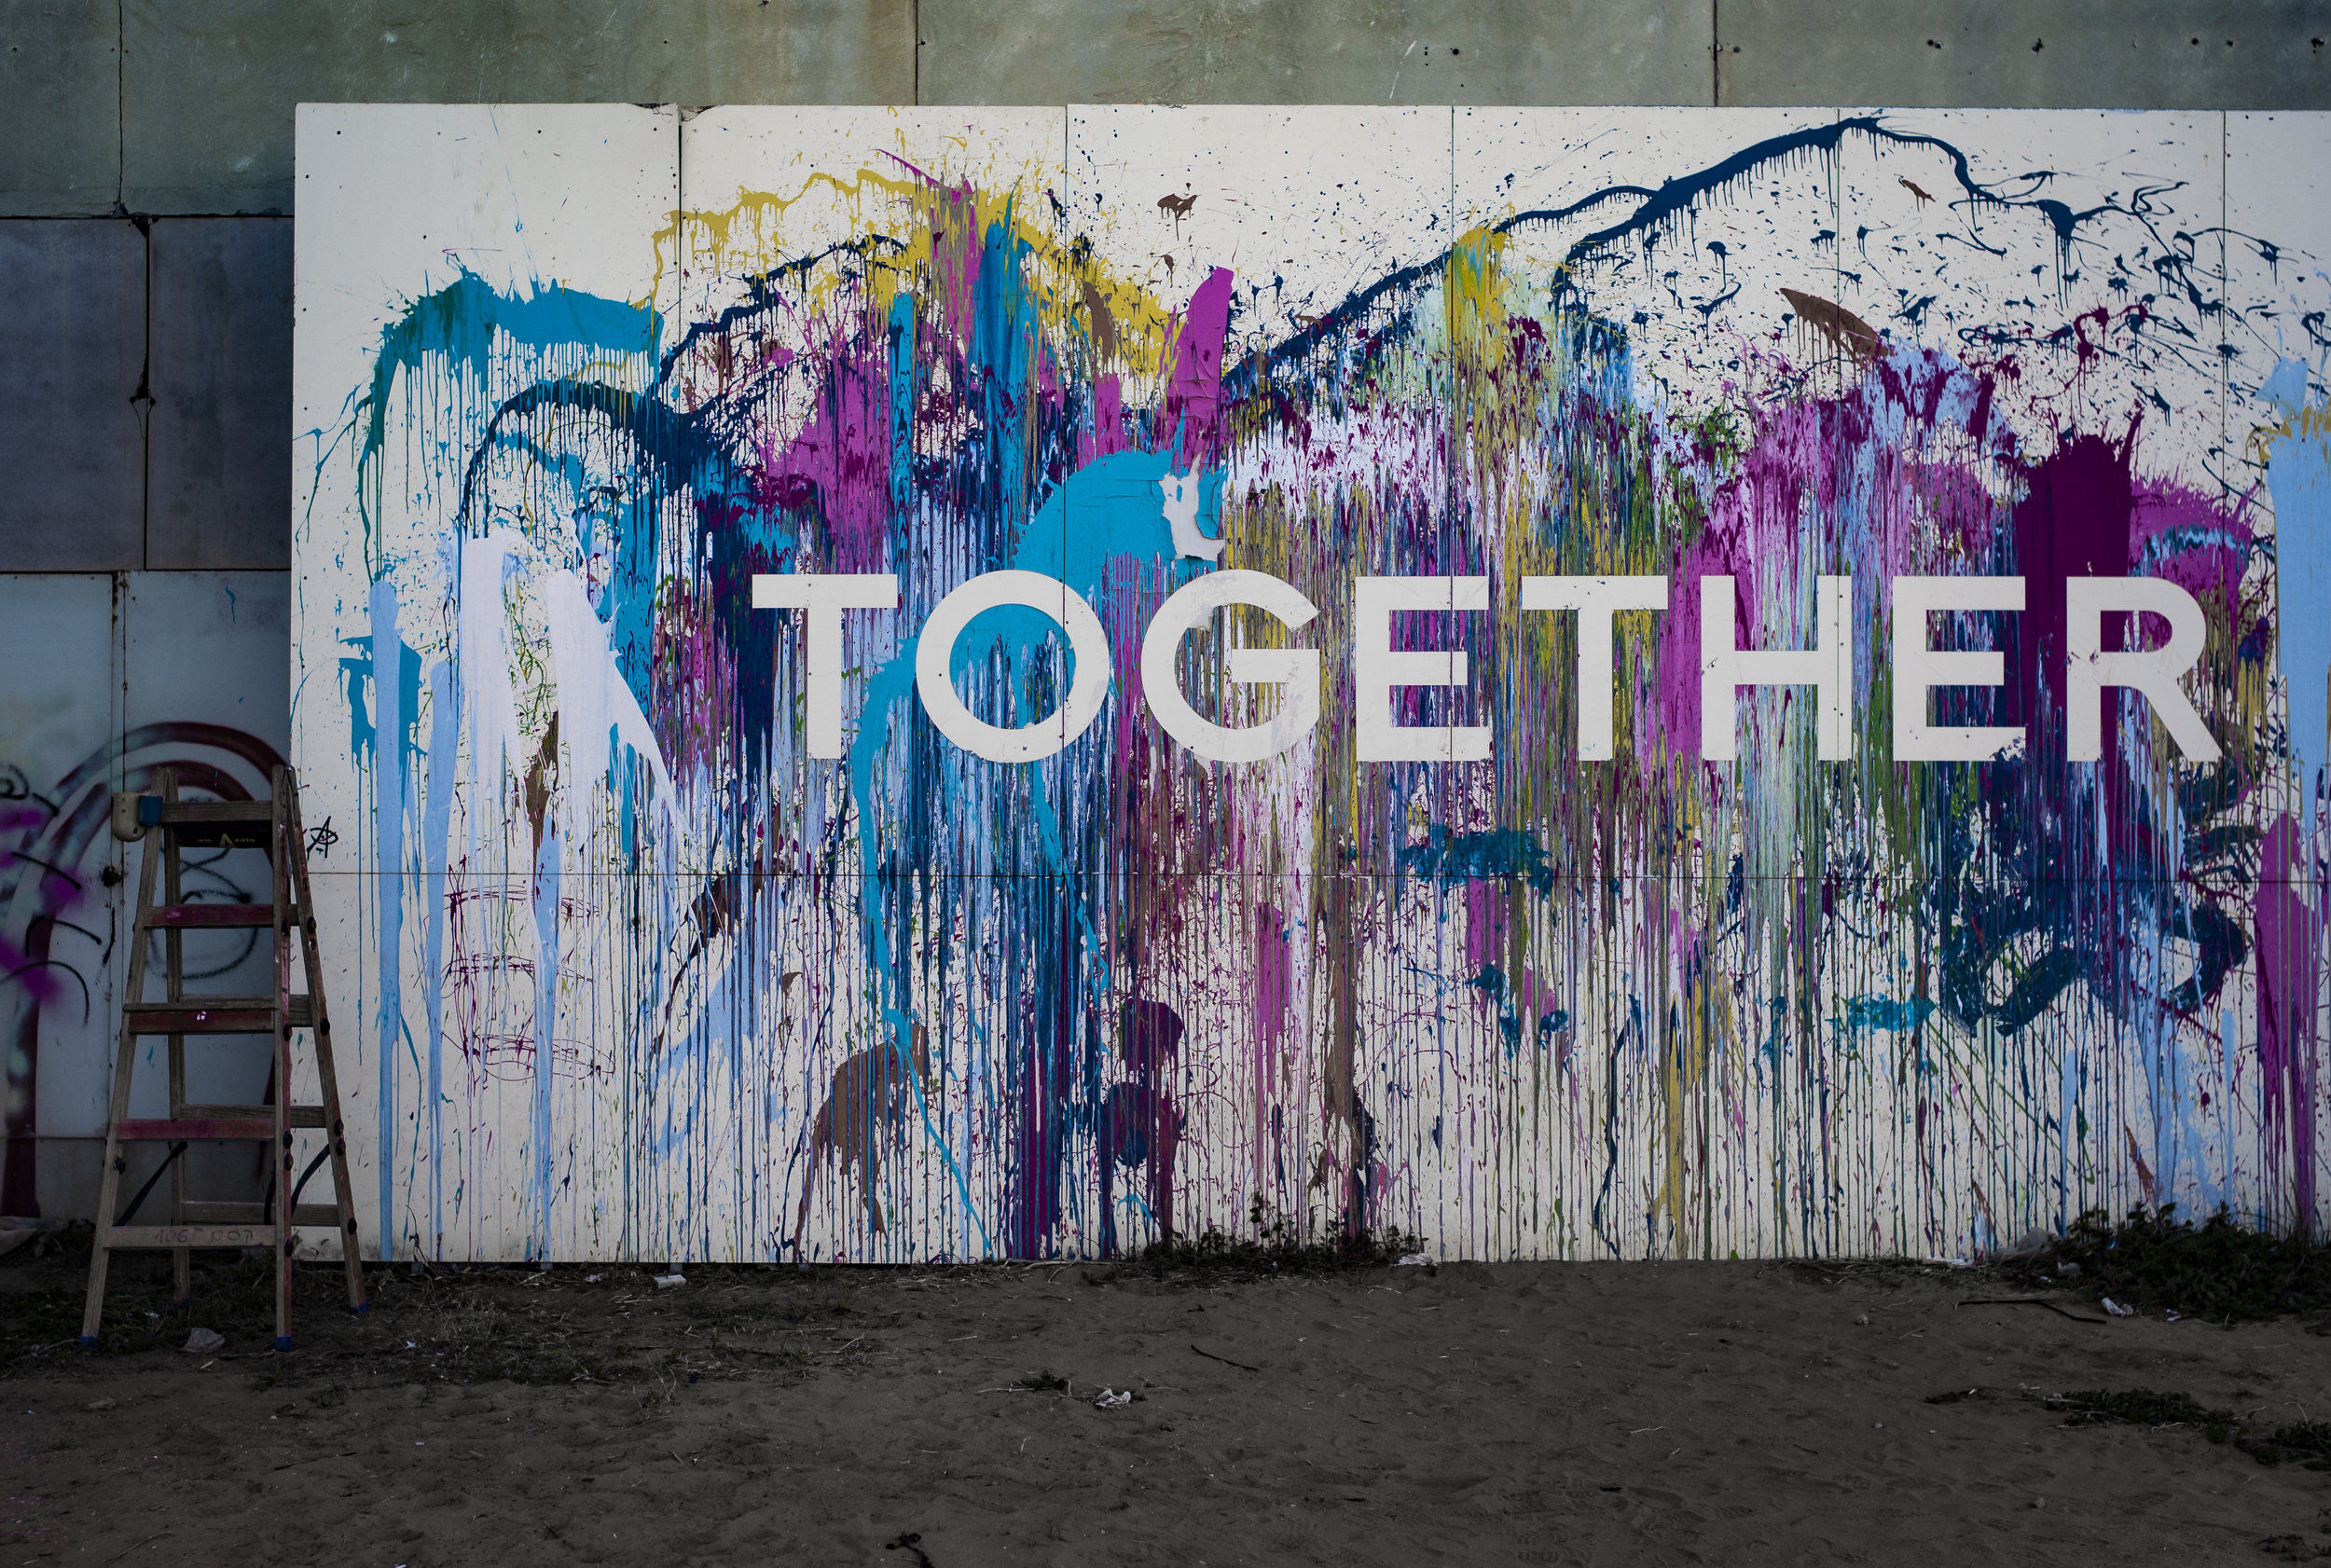 Image: Paint splattered wall with the word 'Together' written across.